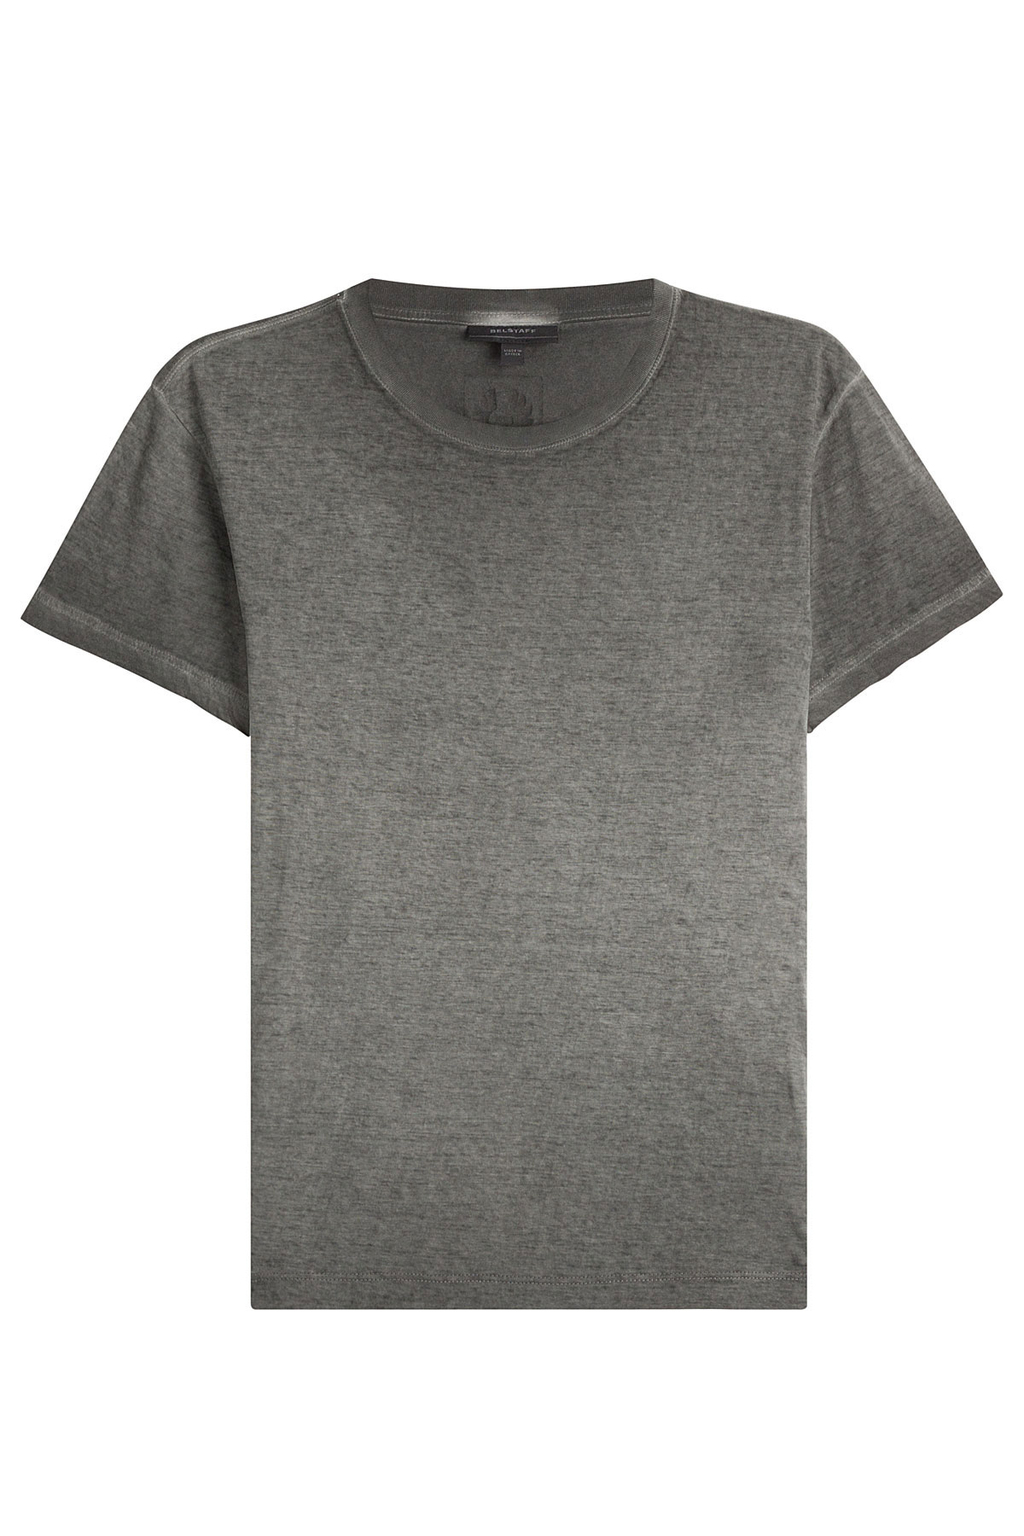 Cotton T Shirt - pattern: plain; style: t-shirt; predominant colour: mid grey; occasions: casual; length: standard; fibres: cotton - 100%; fit: body skimming; neckline: crew; sleeve length: short sleeve; sleeve style: standard; pattern type: fabric; texture group: jersey - stretchy/drapey; wardrobe: basic; season: a/w 2016